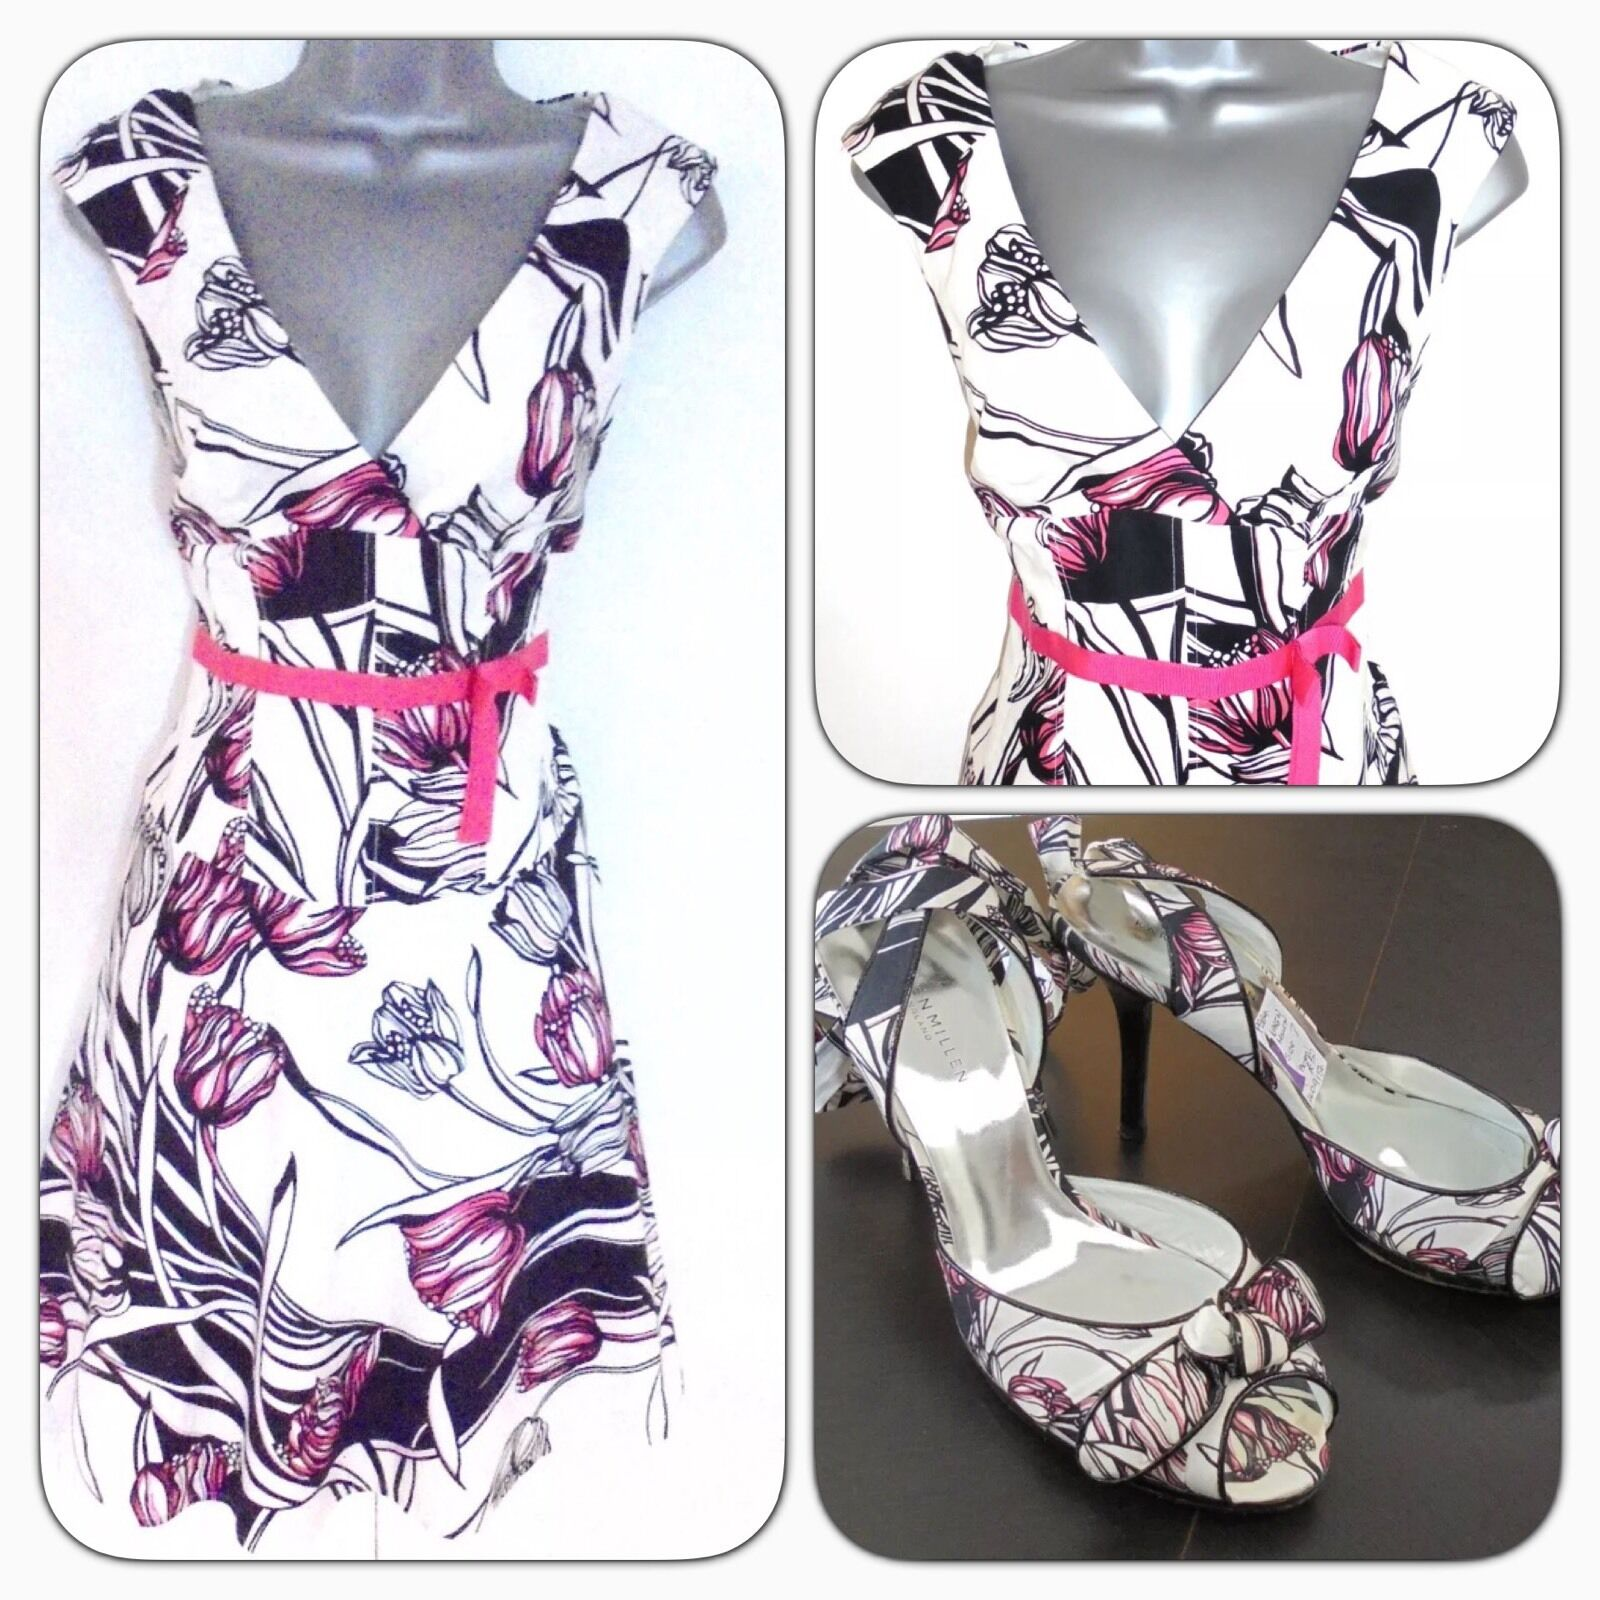 Karen Millen DG226 Tulip Floral Print Evening Occasion Dress 10 & shoes